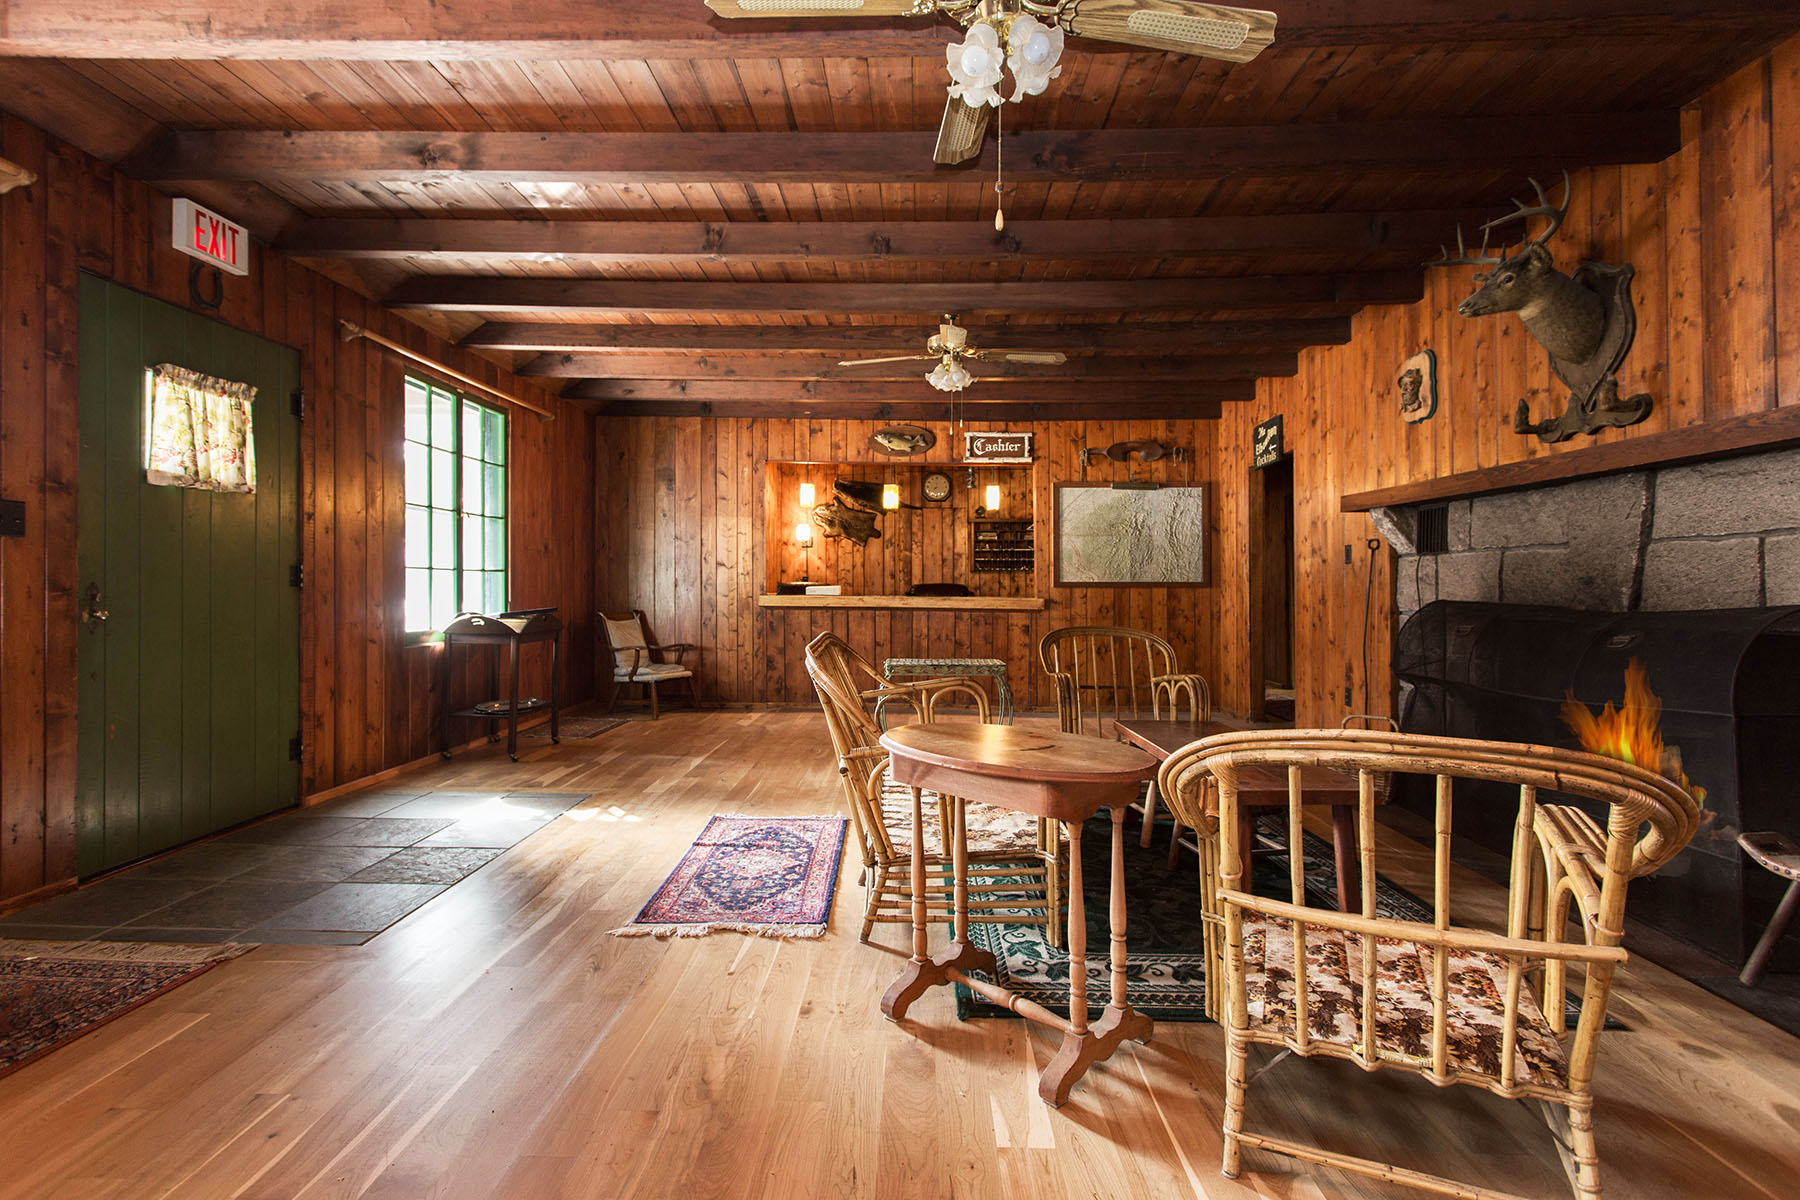 Additional photo for property listing at Historic Potter's Inn 8897  Rt-30 Indian Lake, New York 12812 United States